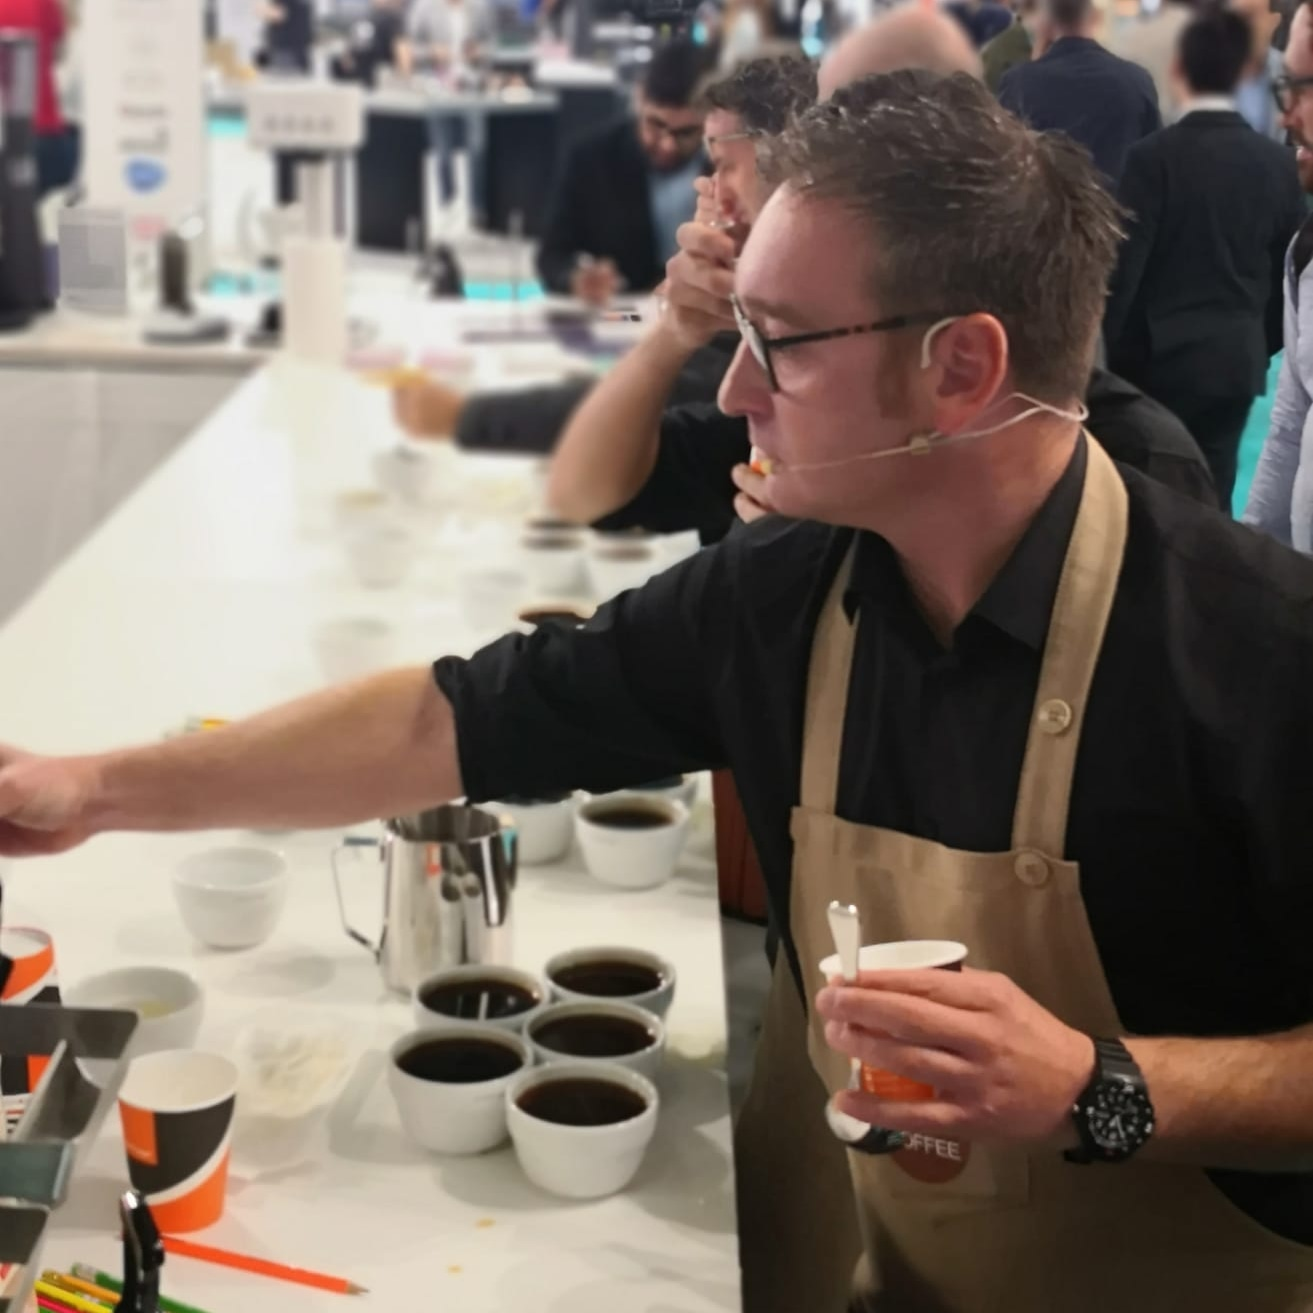 Technique and creativity in a cup: the quality of coffee according to Andrea Guerra